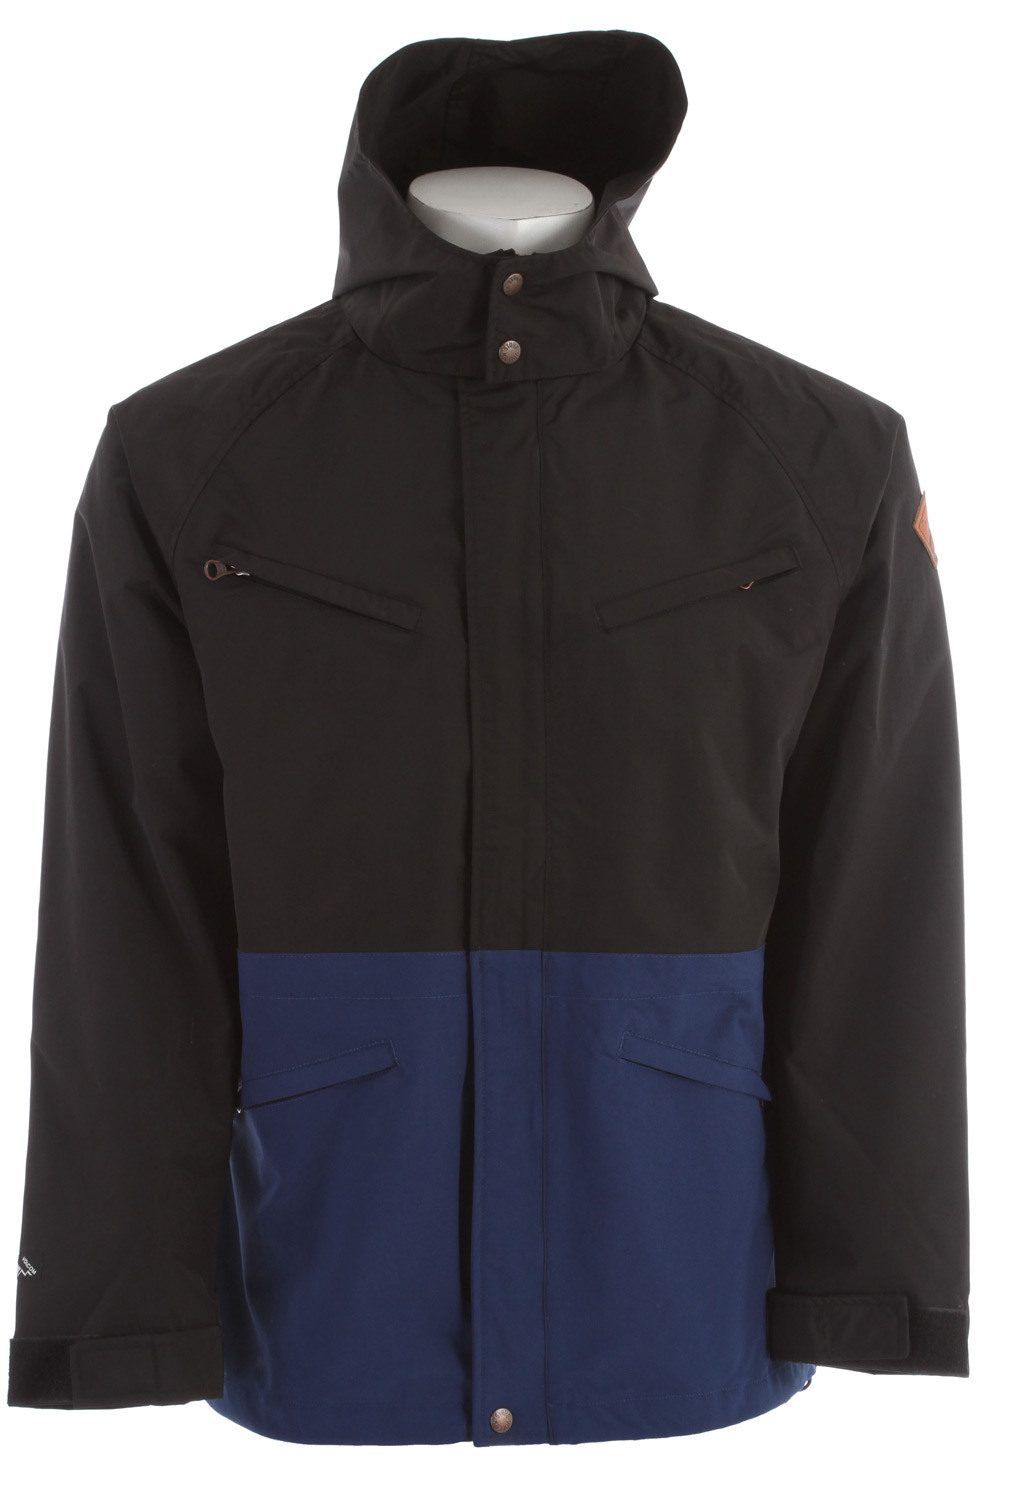 Surf Key Features of the Volcom Quickdraw Jacket: Medium weight waterproof hooded jacket Snap and hidden zipper at center front Chest pockets and hand pockets Adjustable cuffs and removable hood Drawcord detail at waist 100% Nylon Oxford 2000mm Outdoor Collection - $82.95